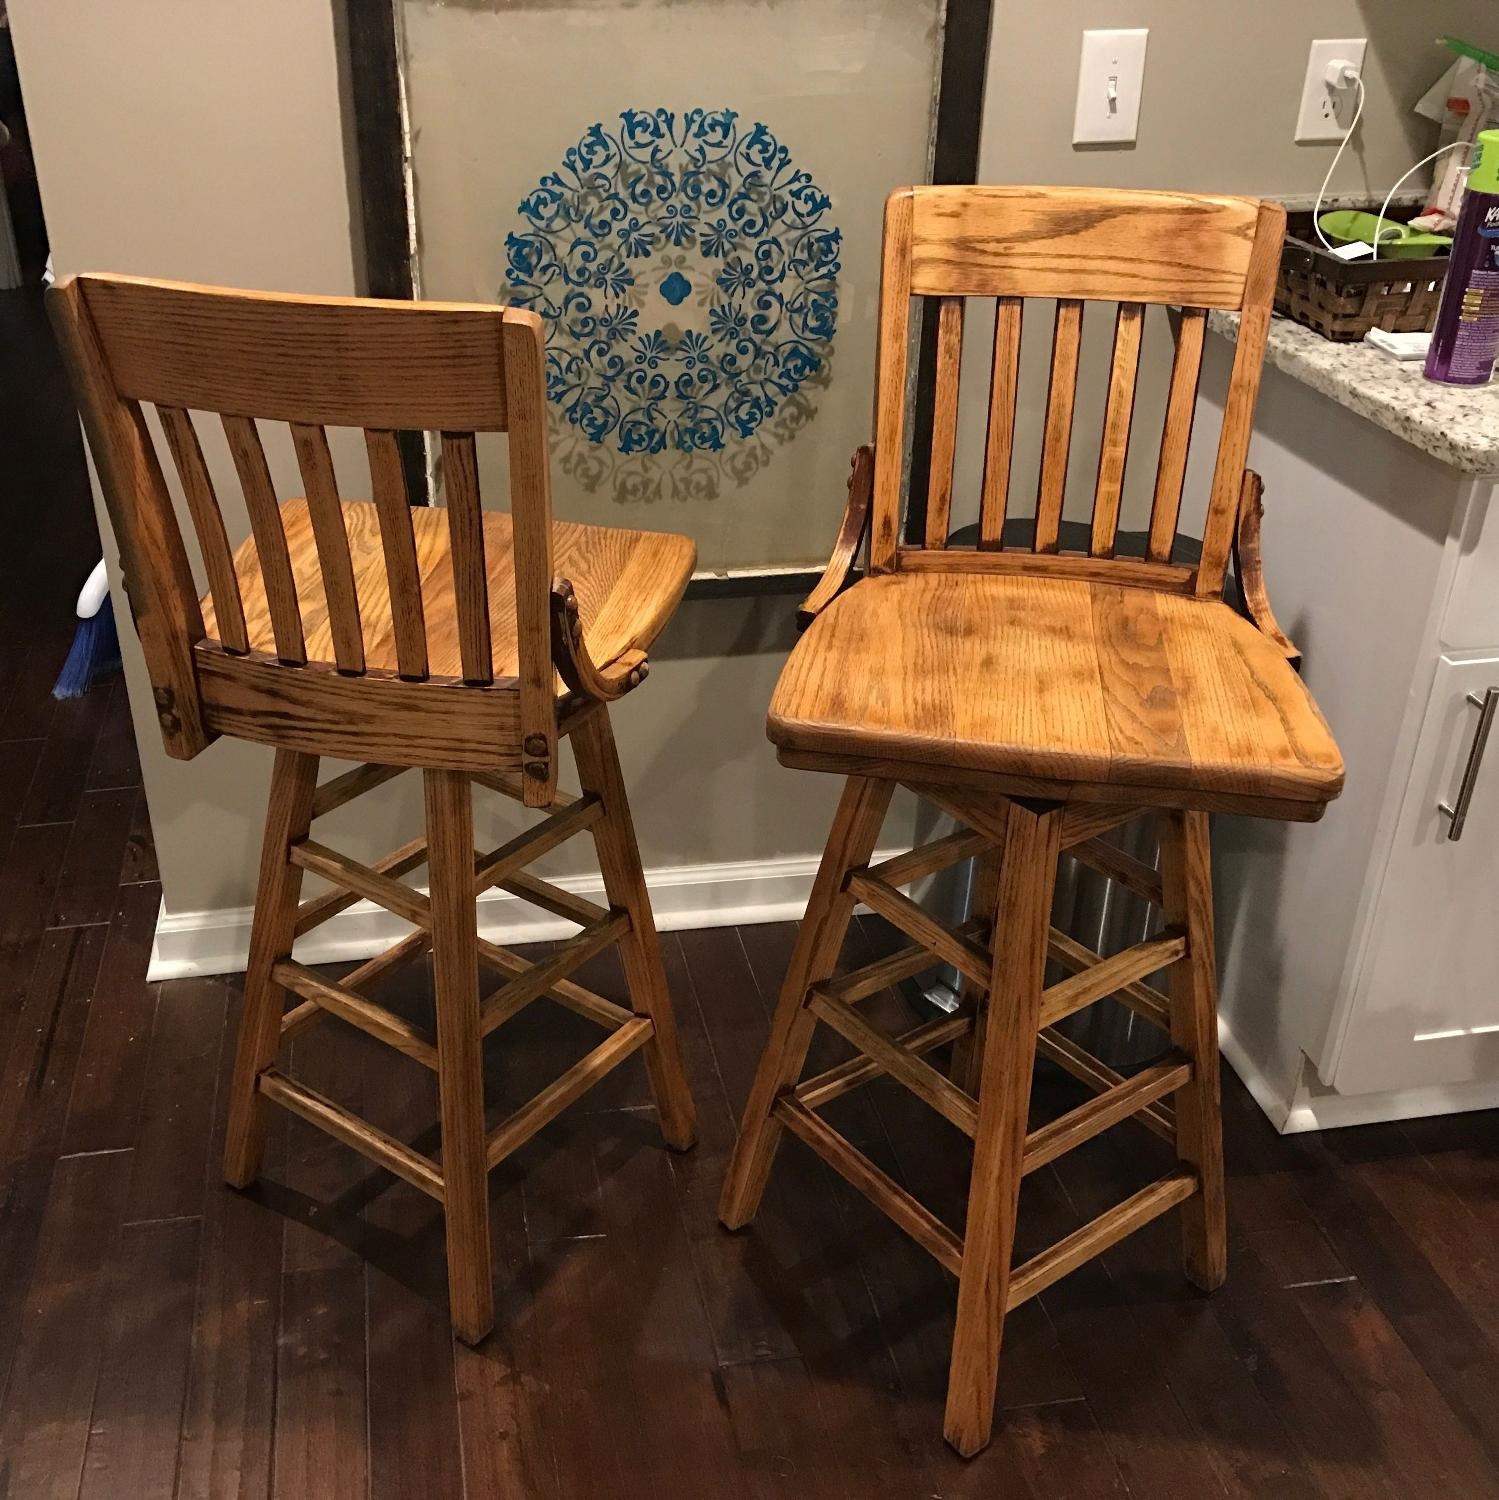 Best solid oak bar stools for sale in nashville tennessee for 2018 Home bar furniture nashville tn